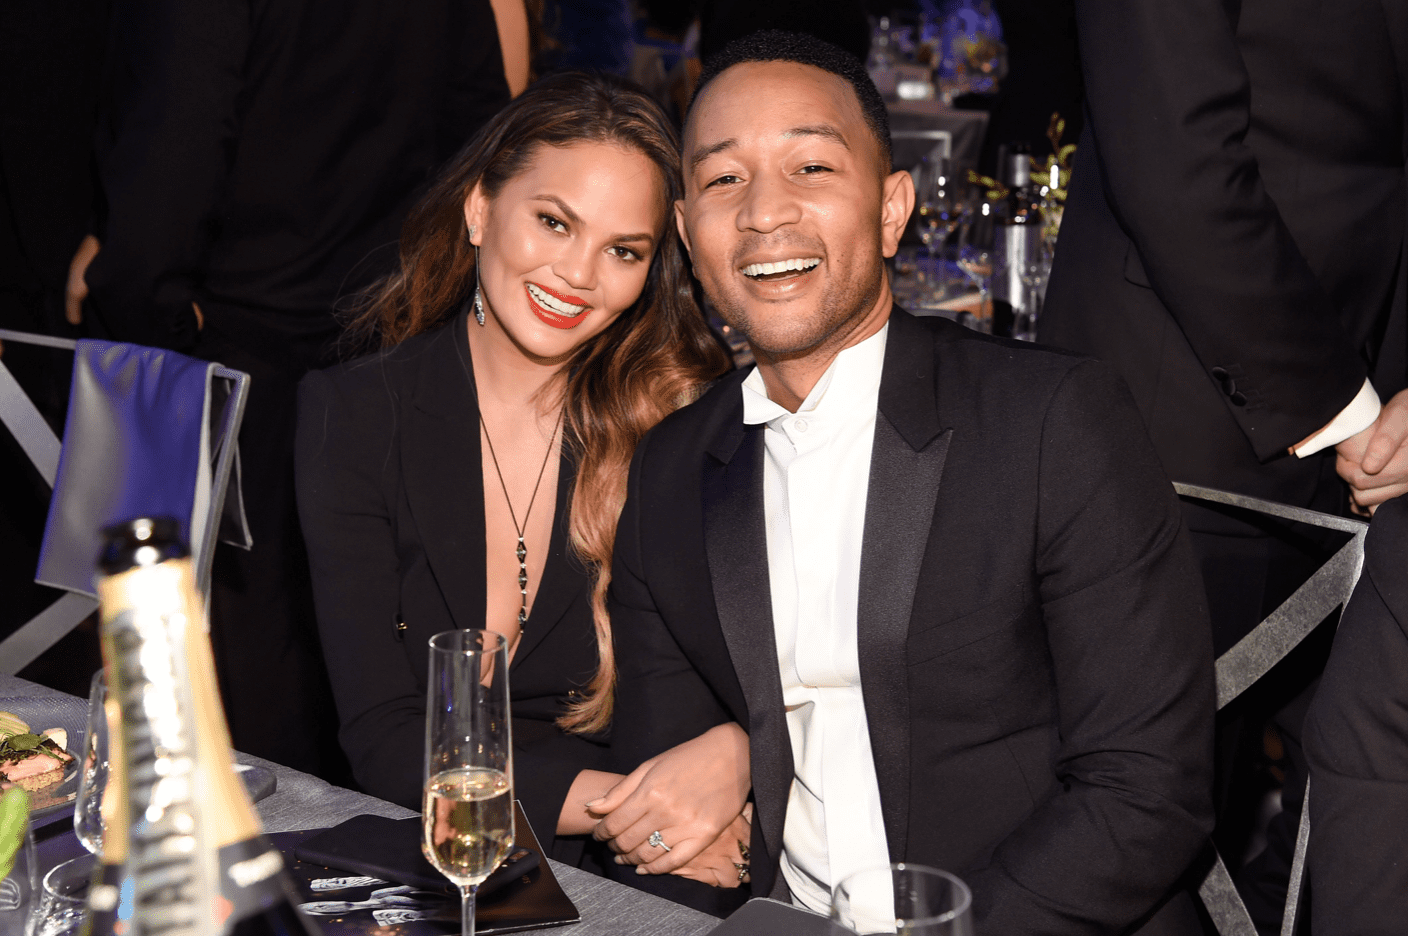 Chrissy Teigen and John Legend during the 23rd Annual Screen Actors Guild Awards on January 29, 2017 in Los Angeles, California. | Source: Getty Images